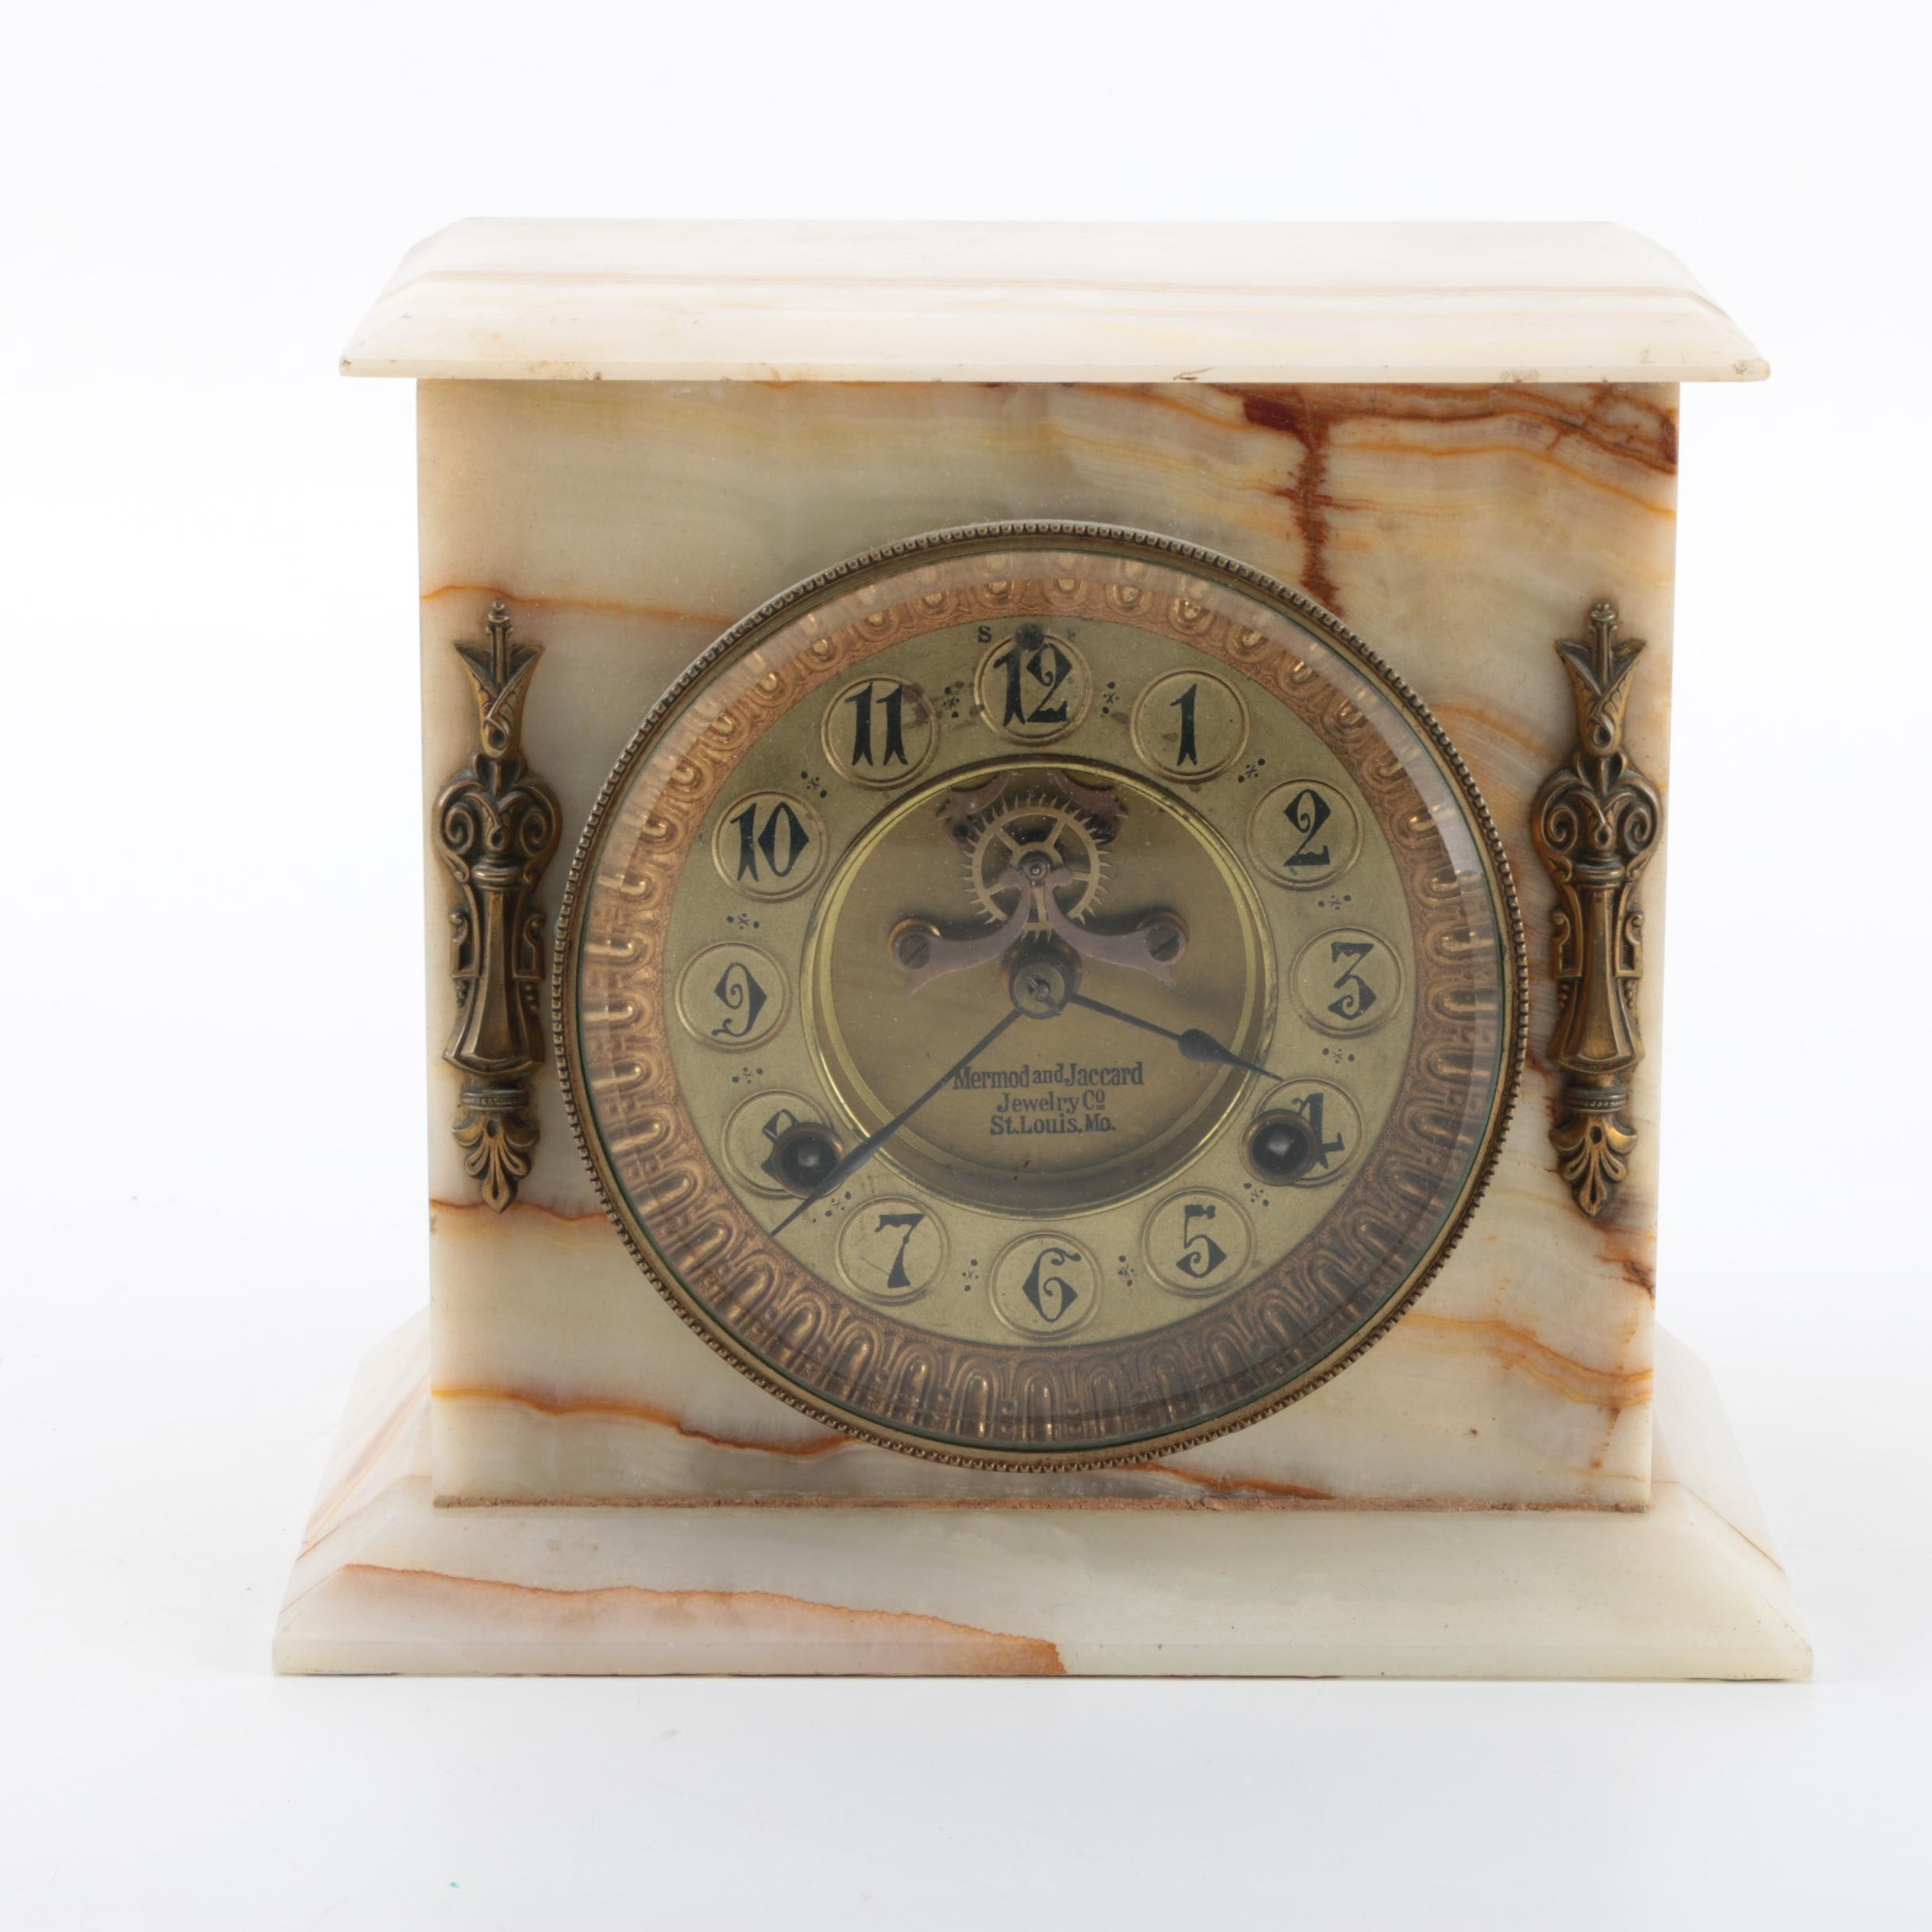 Antique Mermod and Jaccard Alabaster Mantel Clock